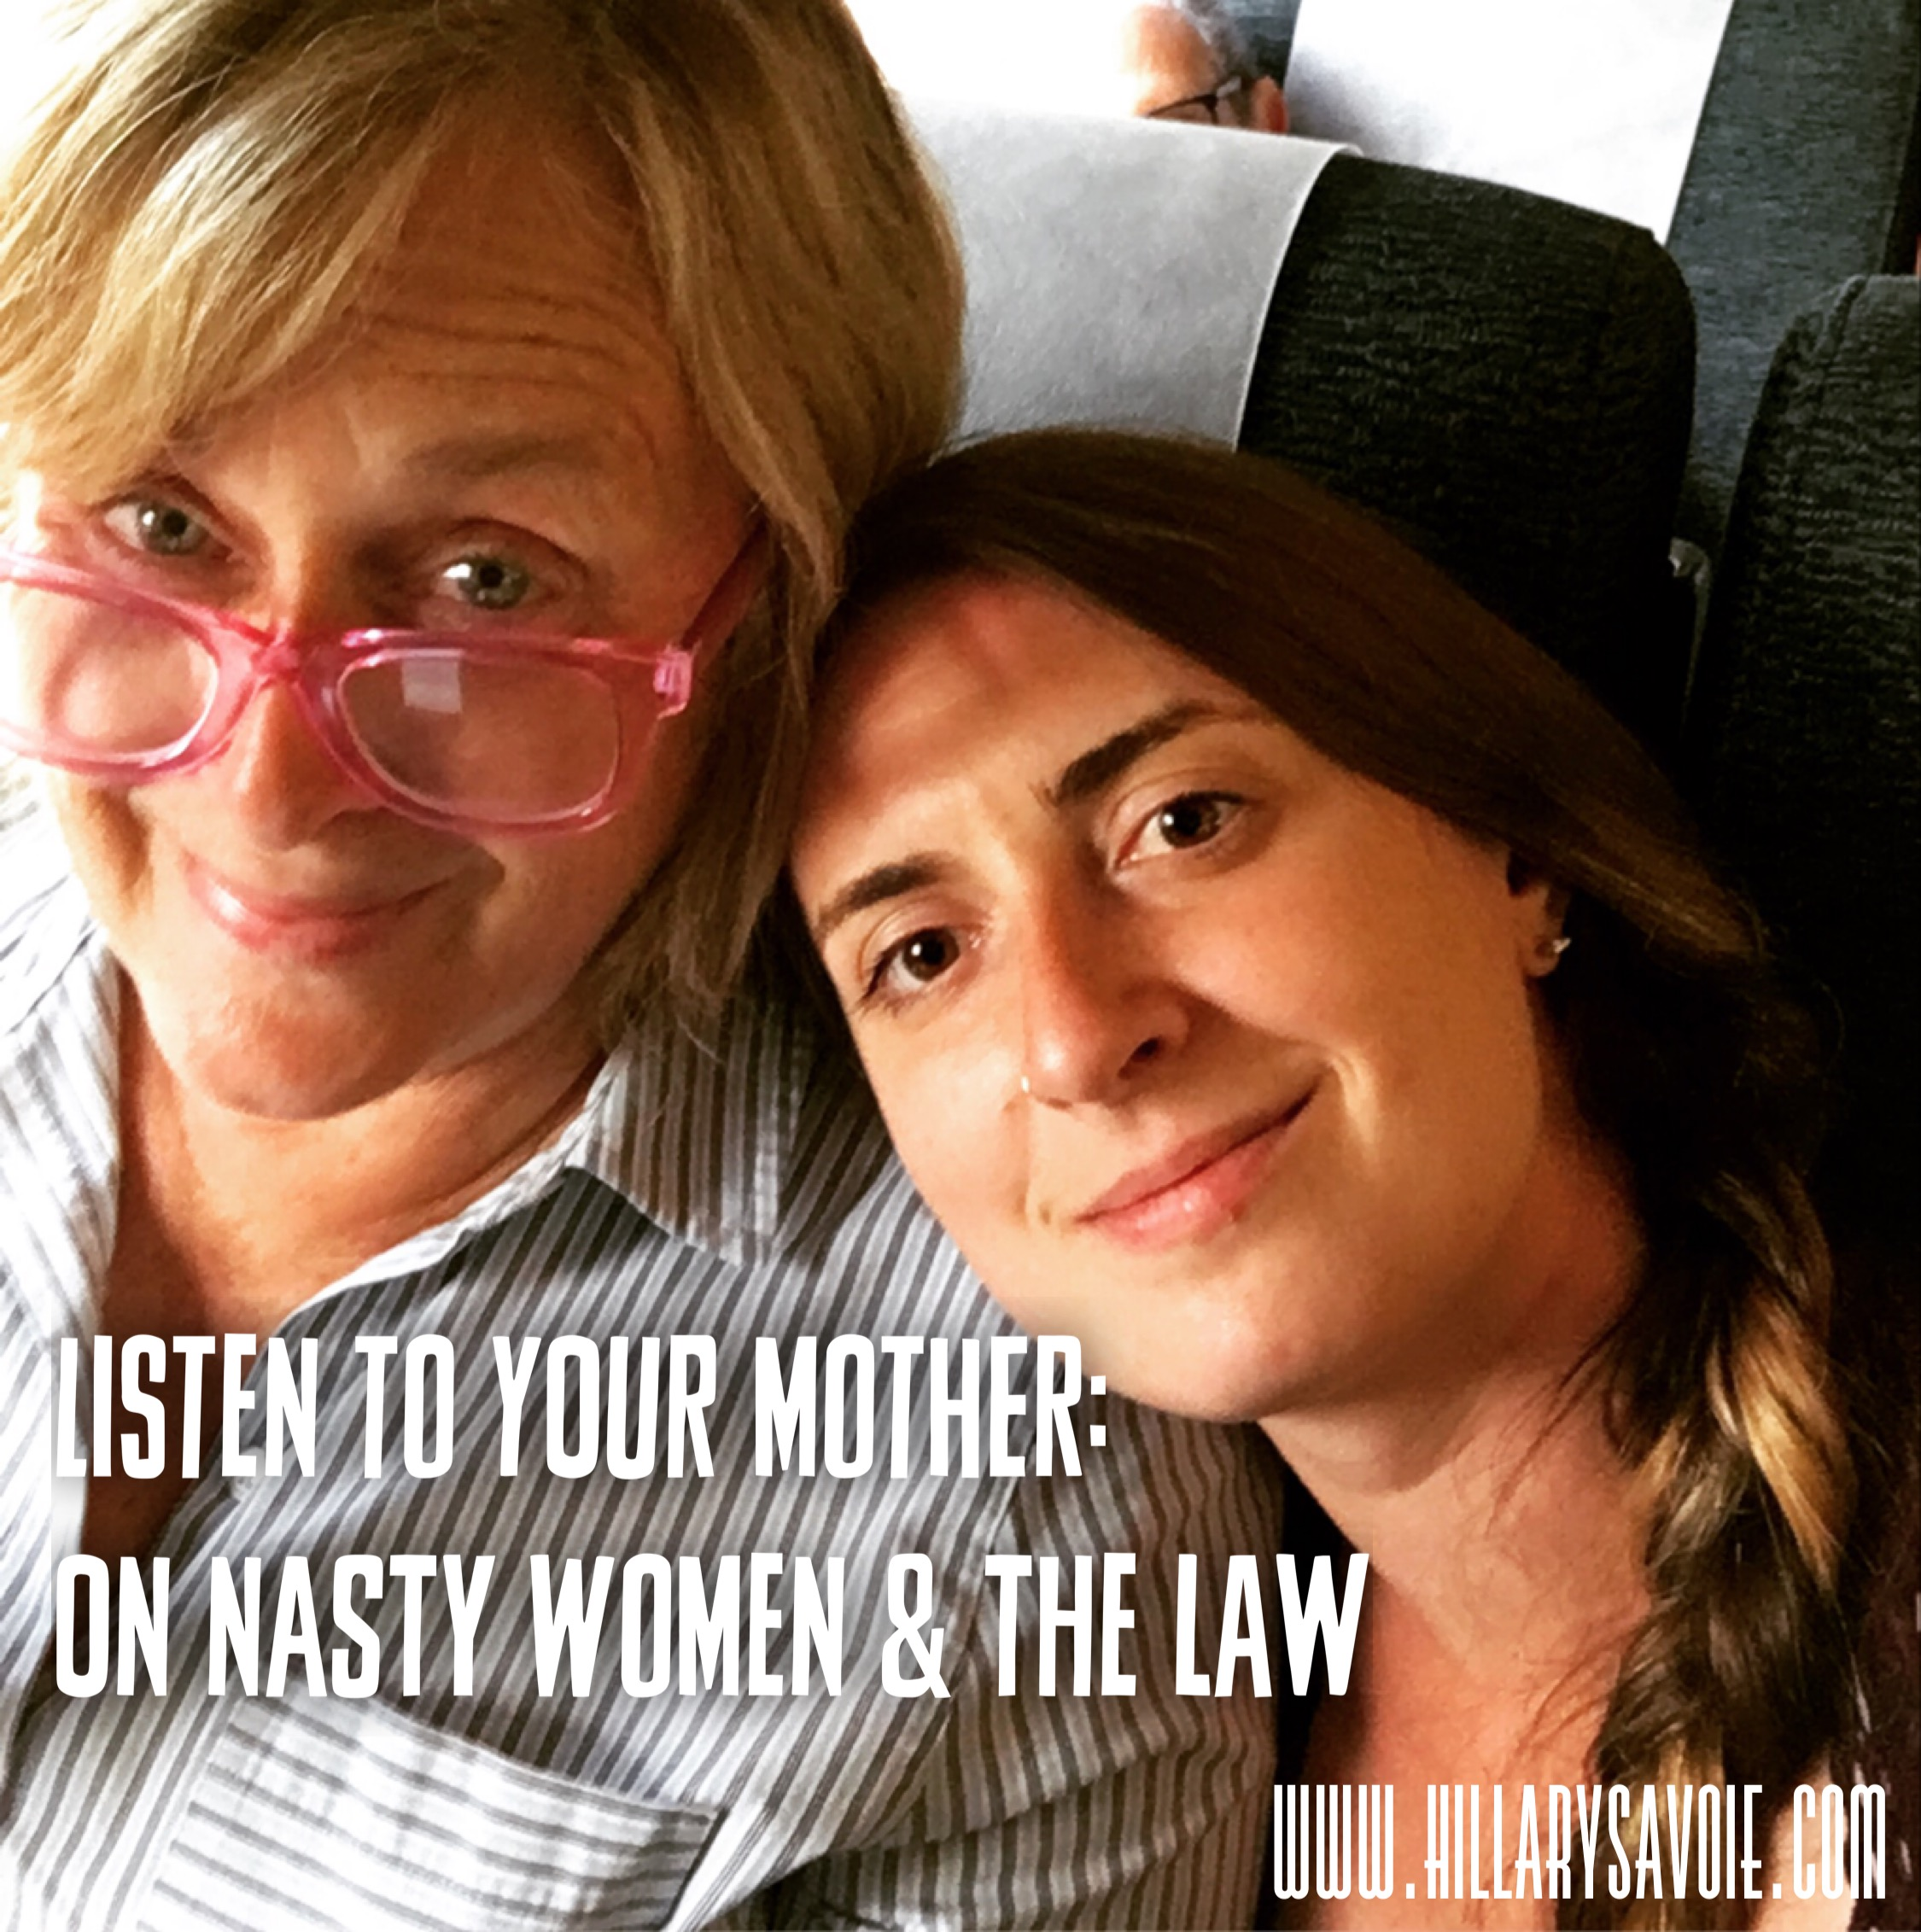 Listen to Your Mother: Nasty Women and the Law